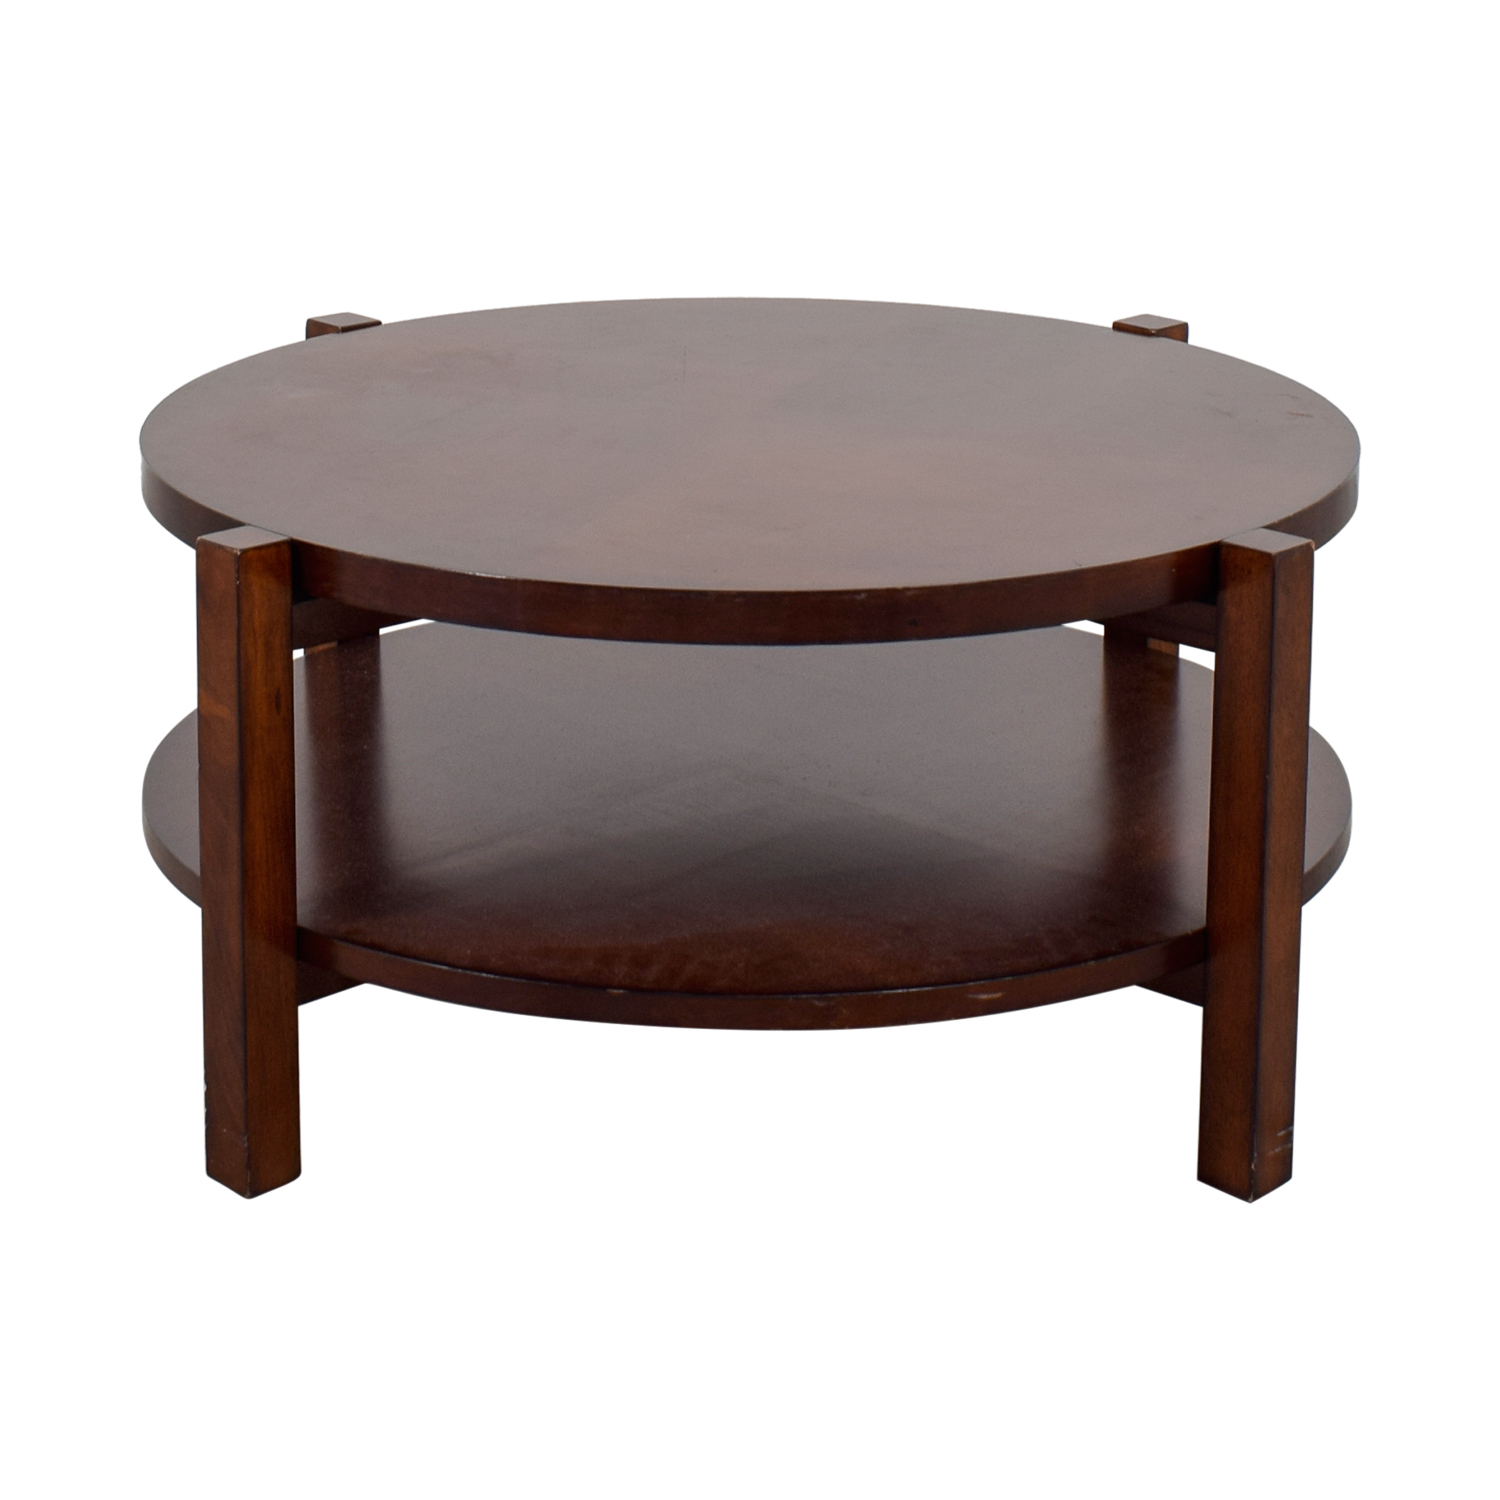 Bassett Bassett Rotating Round Wood Coffee Table Coupon